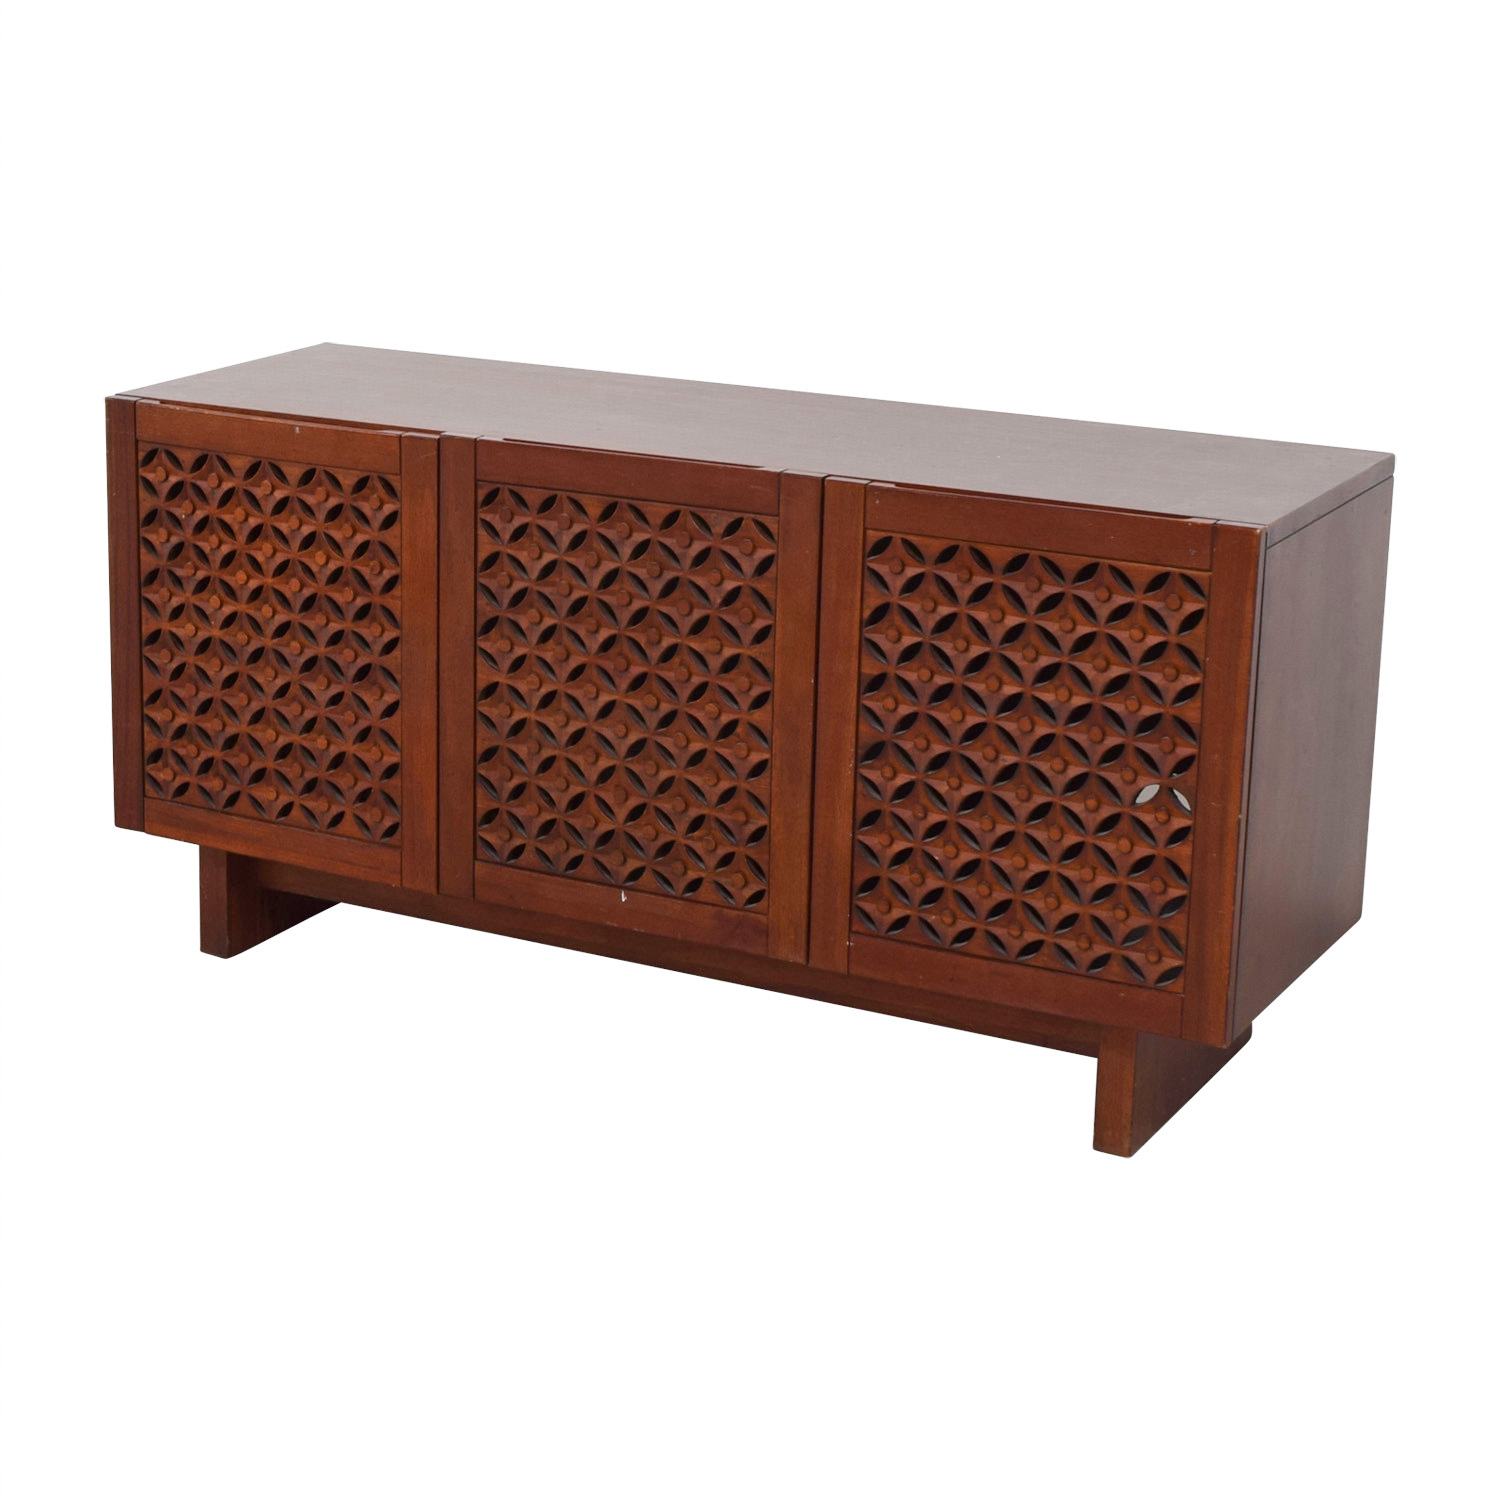 West Elm West Elm Carved Wood Media Console